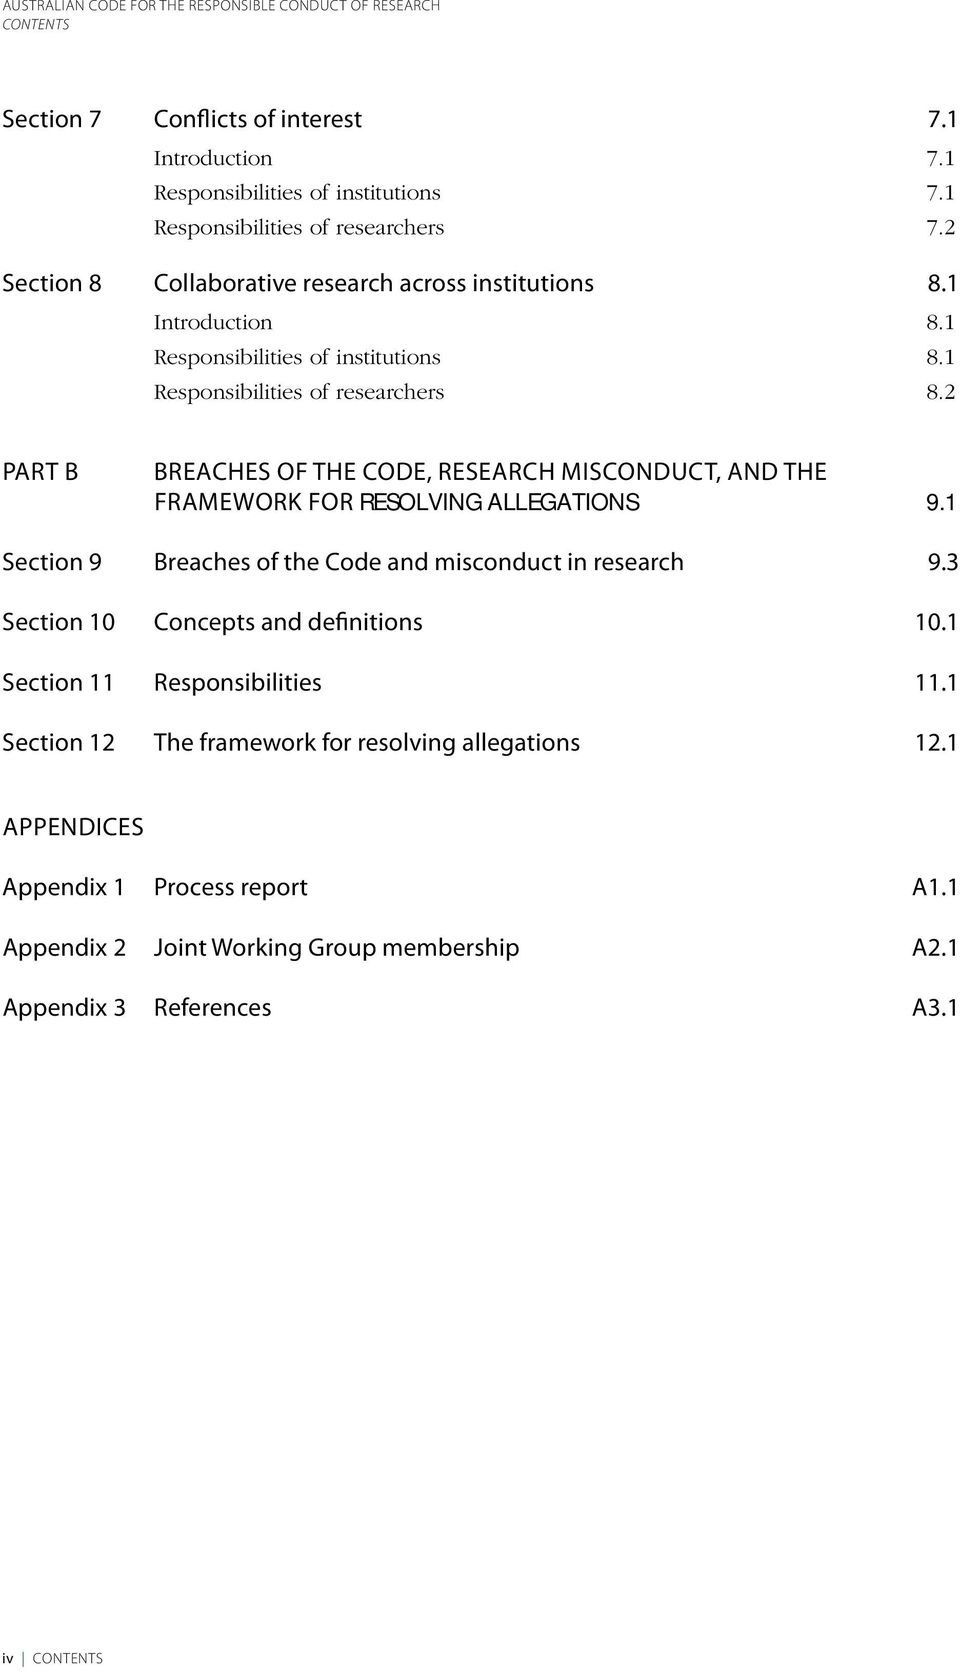 2 Part B Breaches of the Code, research misconduct, and the framework for RESOLVING ALLEGATIONS 9.1 Section 9 Breaches of the Code and misconduct in research 9.